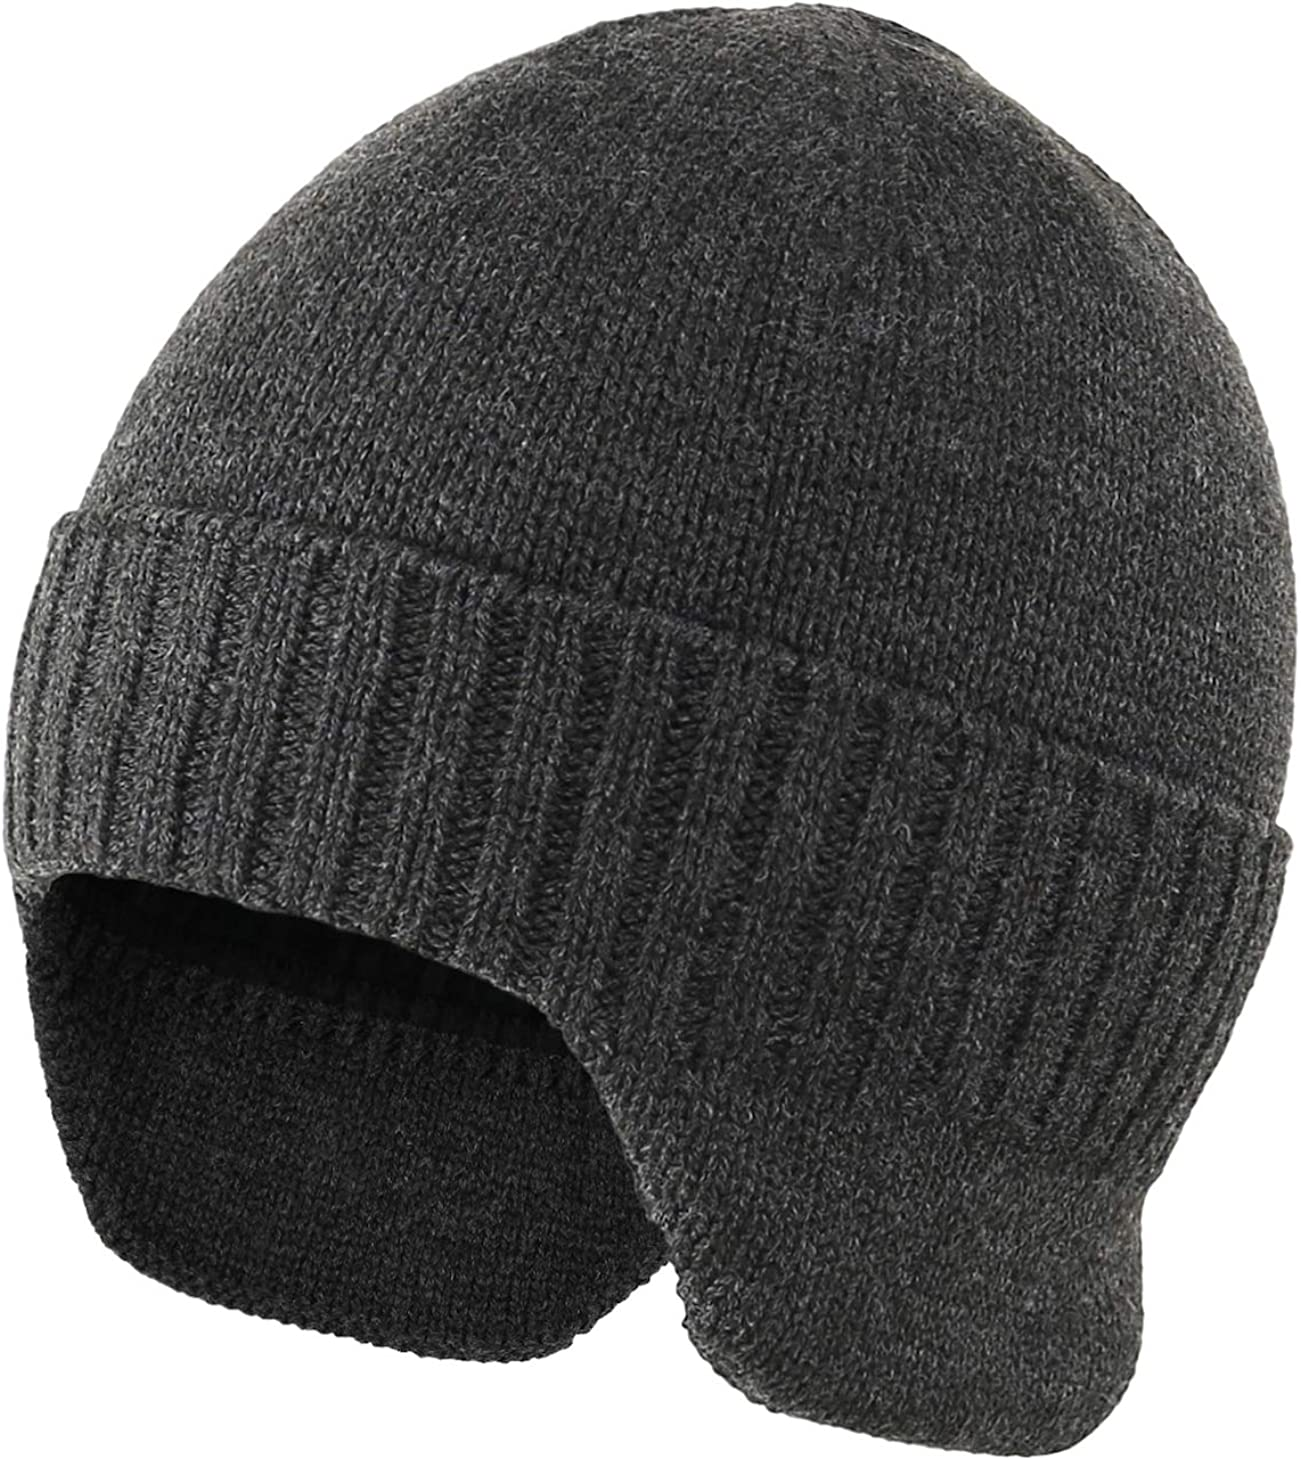 Home Prefer Mens Winter Hat Knit Earflap Hat Stocking Caps with Ears Warm Hat